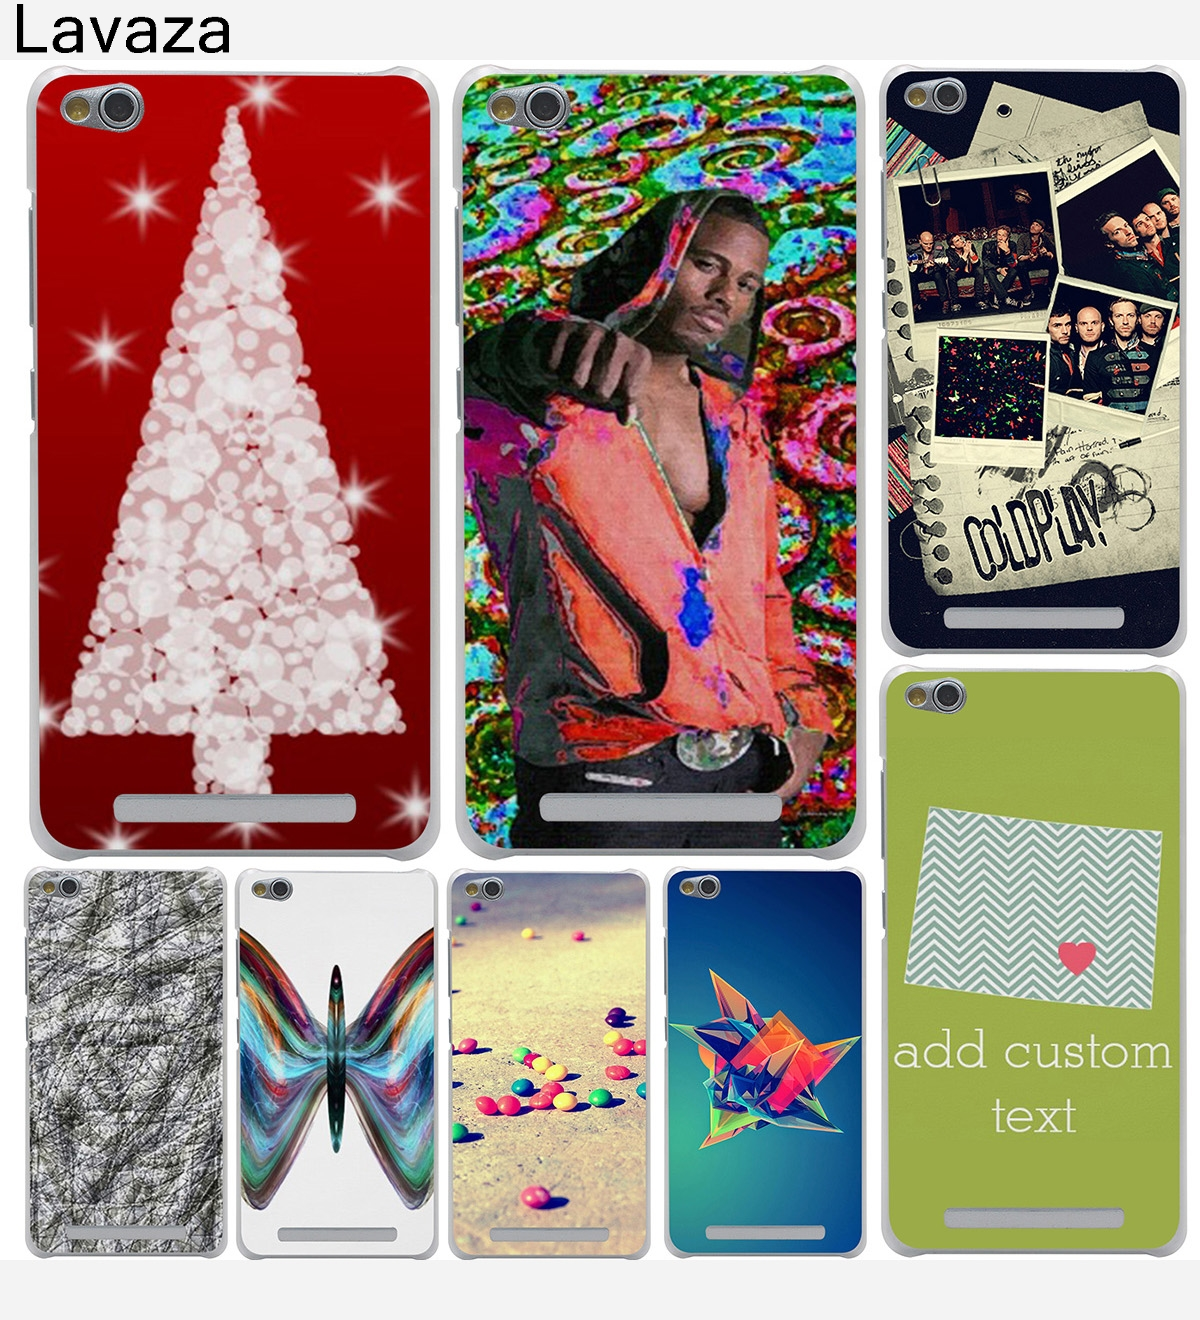 Lavaza Colorful Candies On The Ground Hard Case for Xiaomi Redmi 4X Mi A1 6 5 5X 5S Plus Note 5A 2 3 3S 4A 4 4X Pro Prime Mi5X